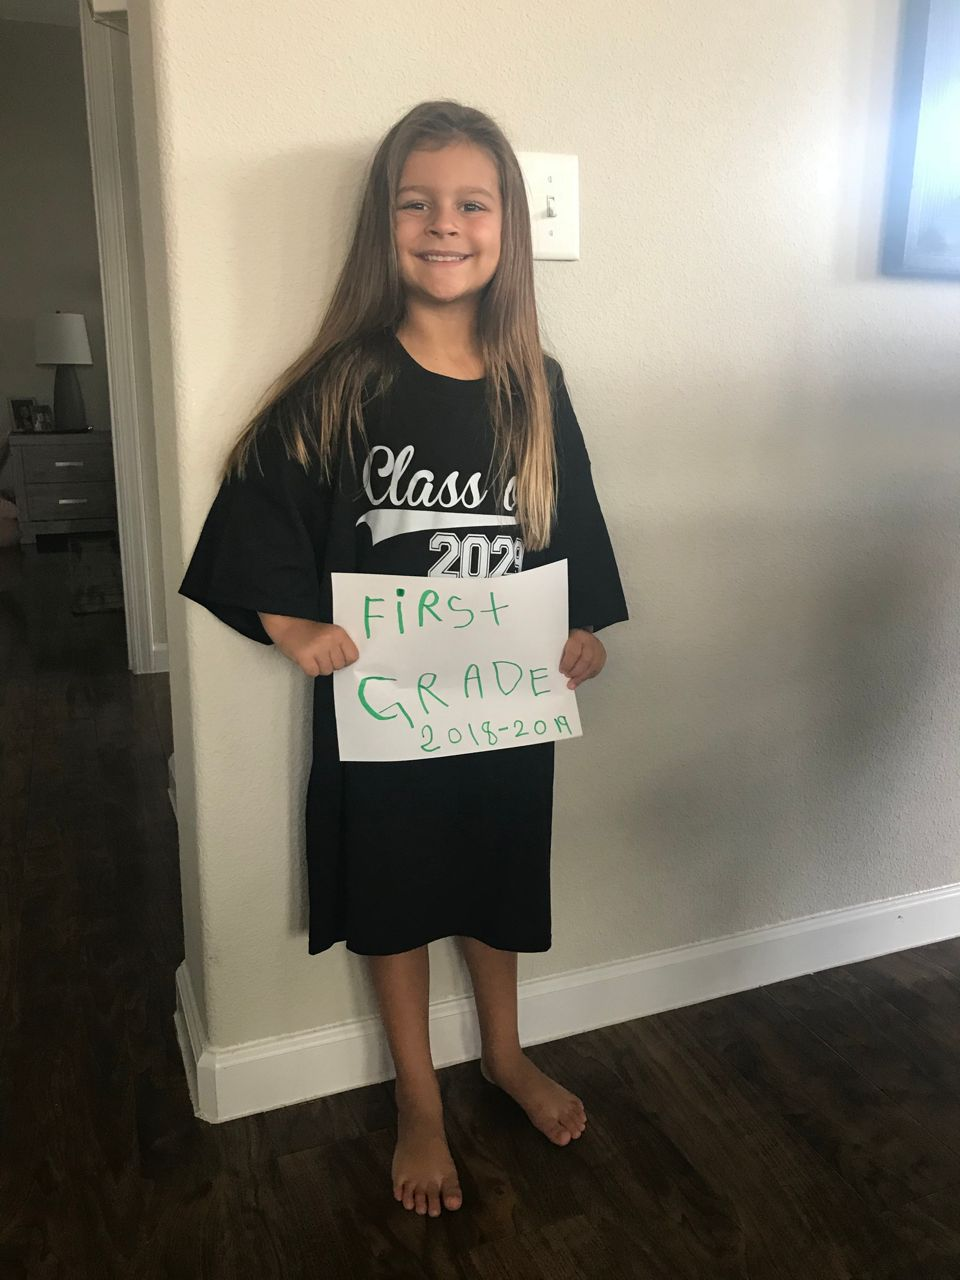 This student is excited and ready to start 1st grade!